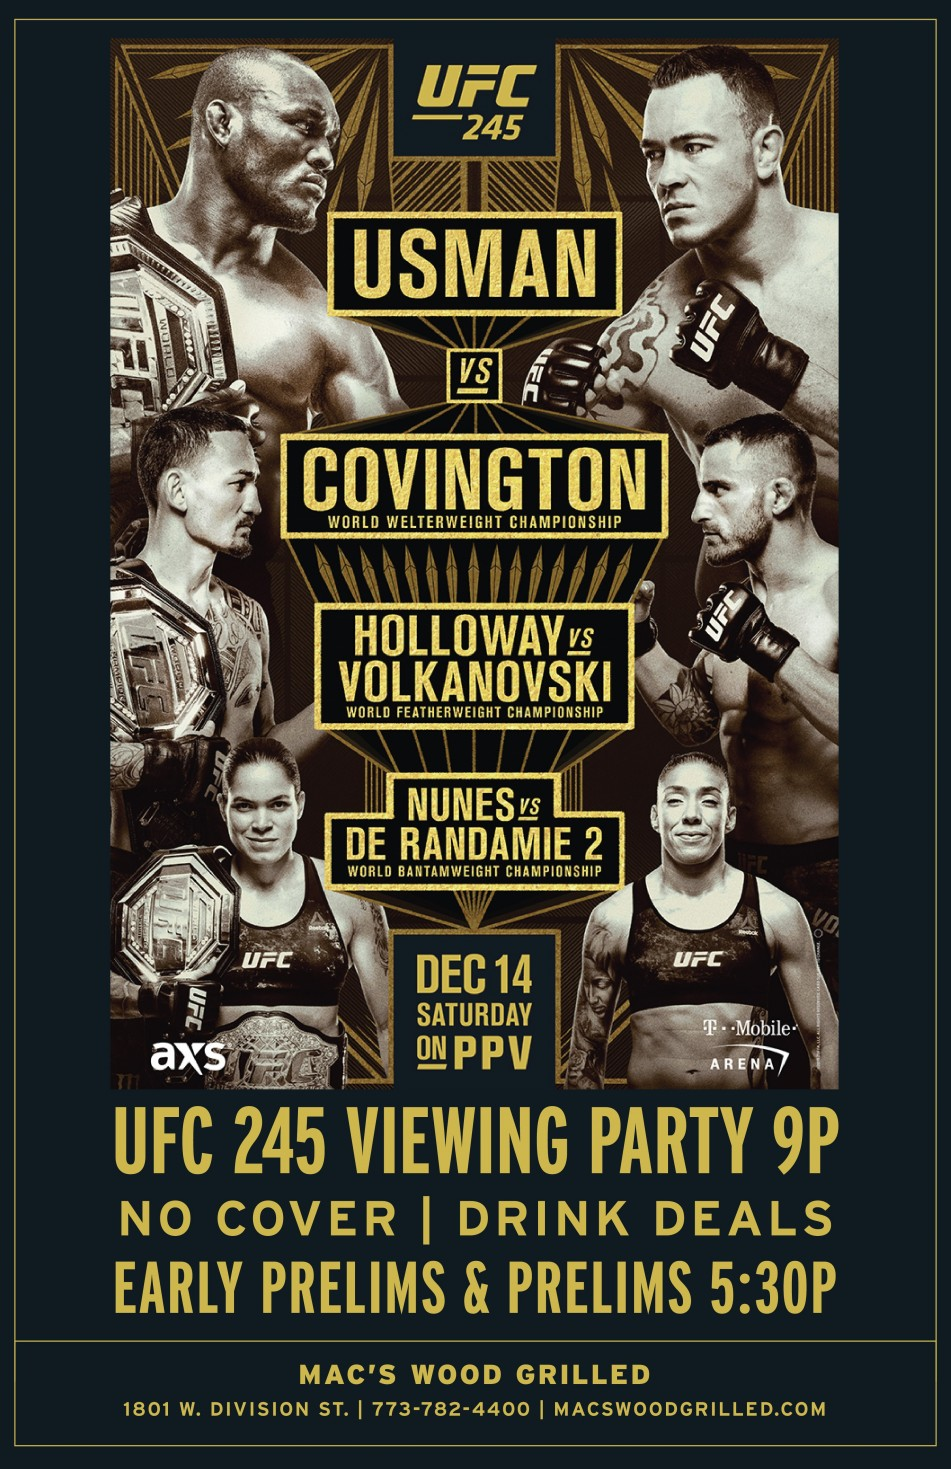 UFC 245 Viewing Party at Mac's Wood Grilled